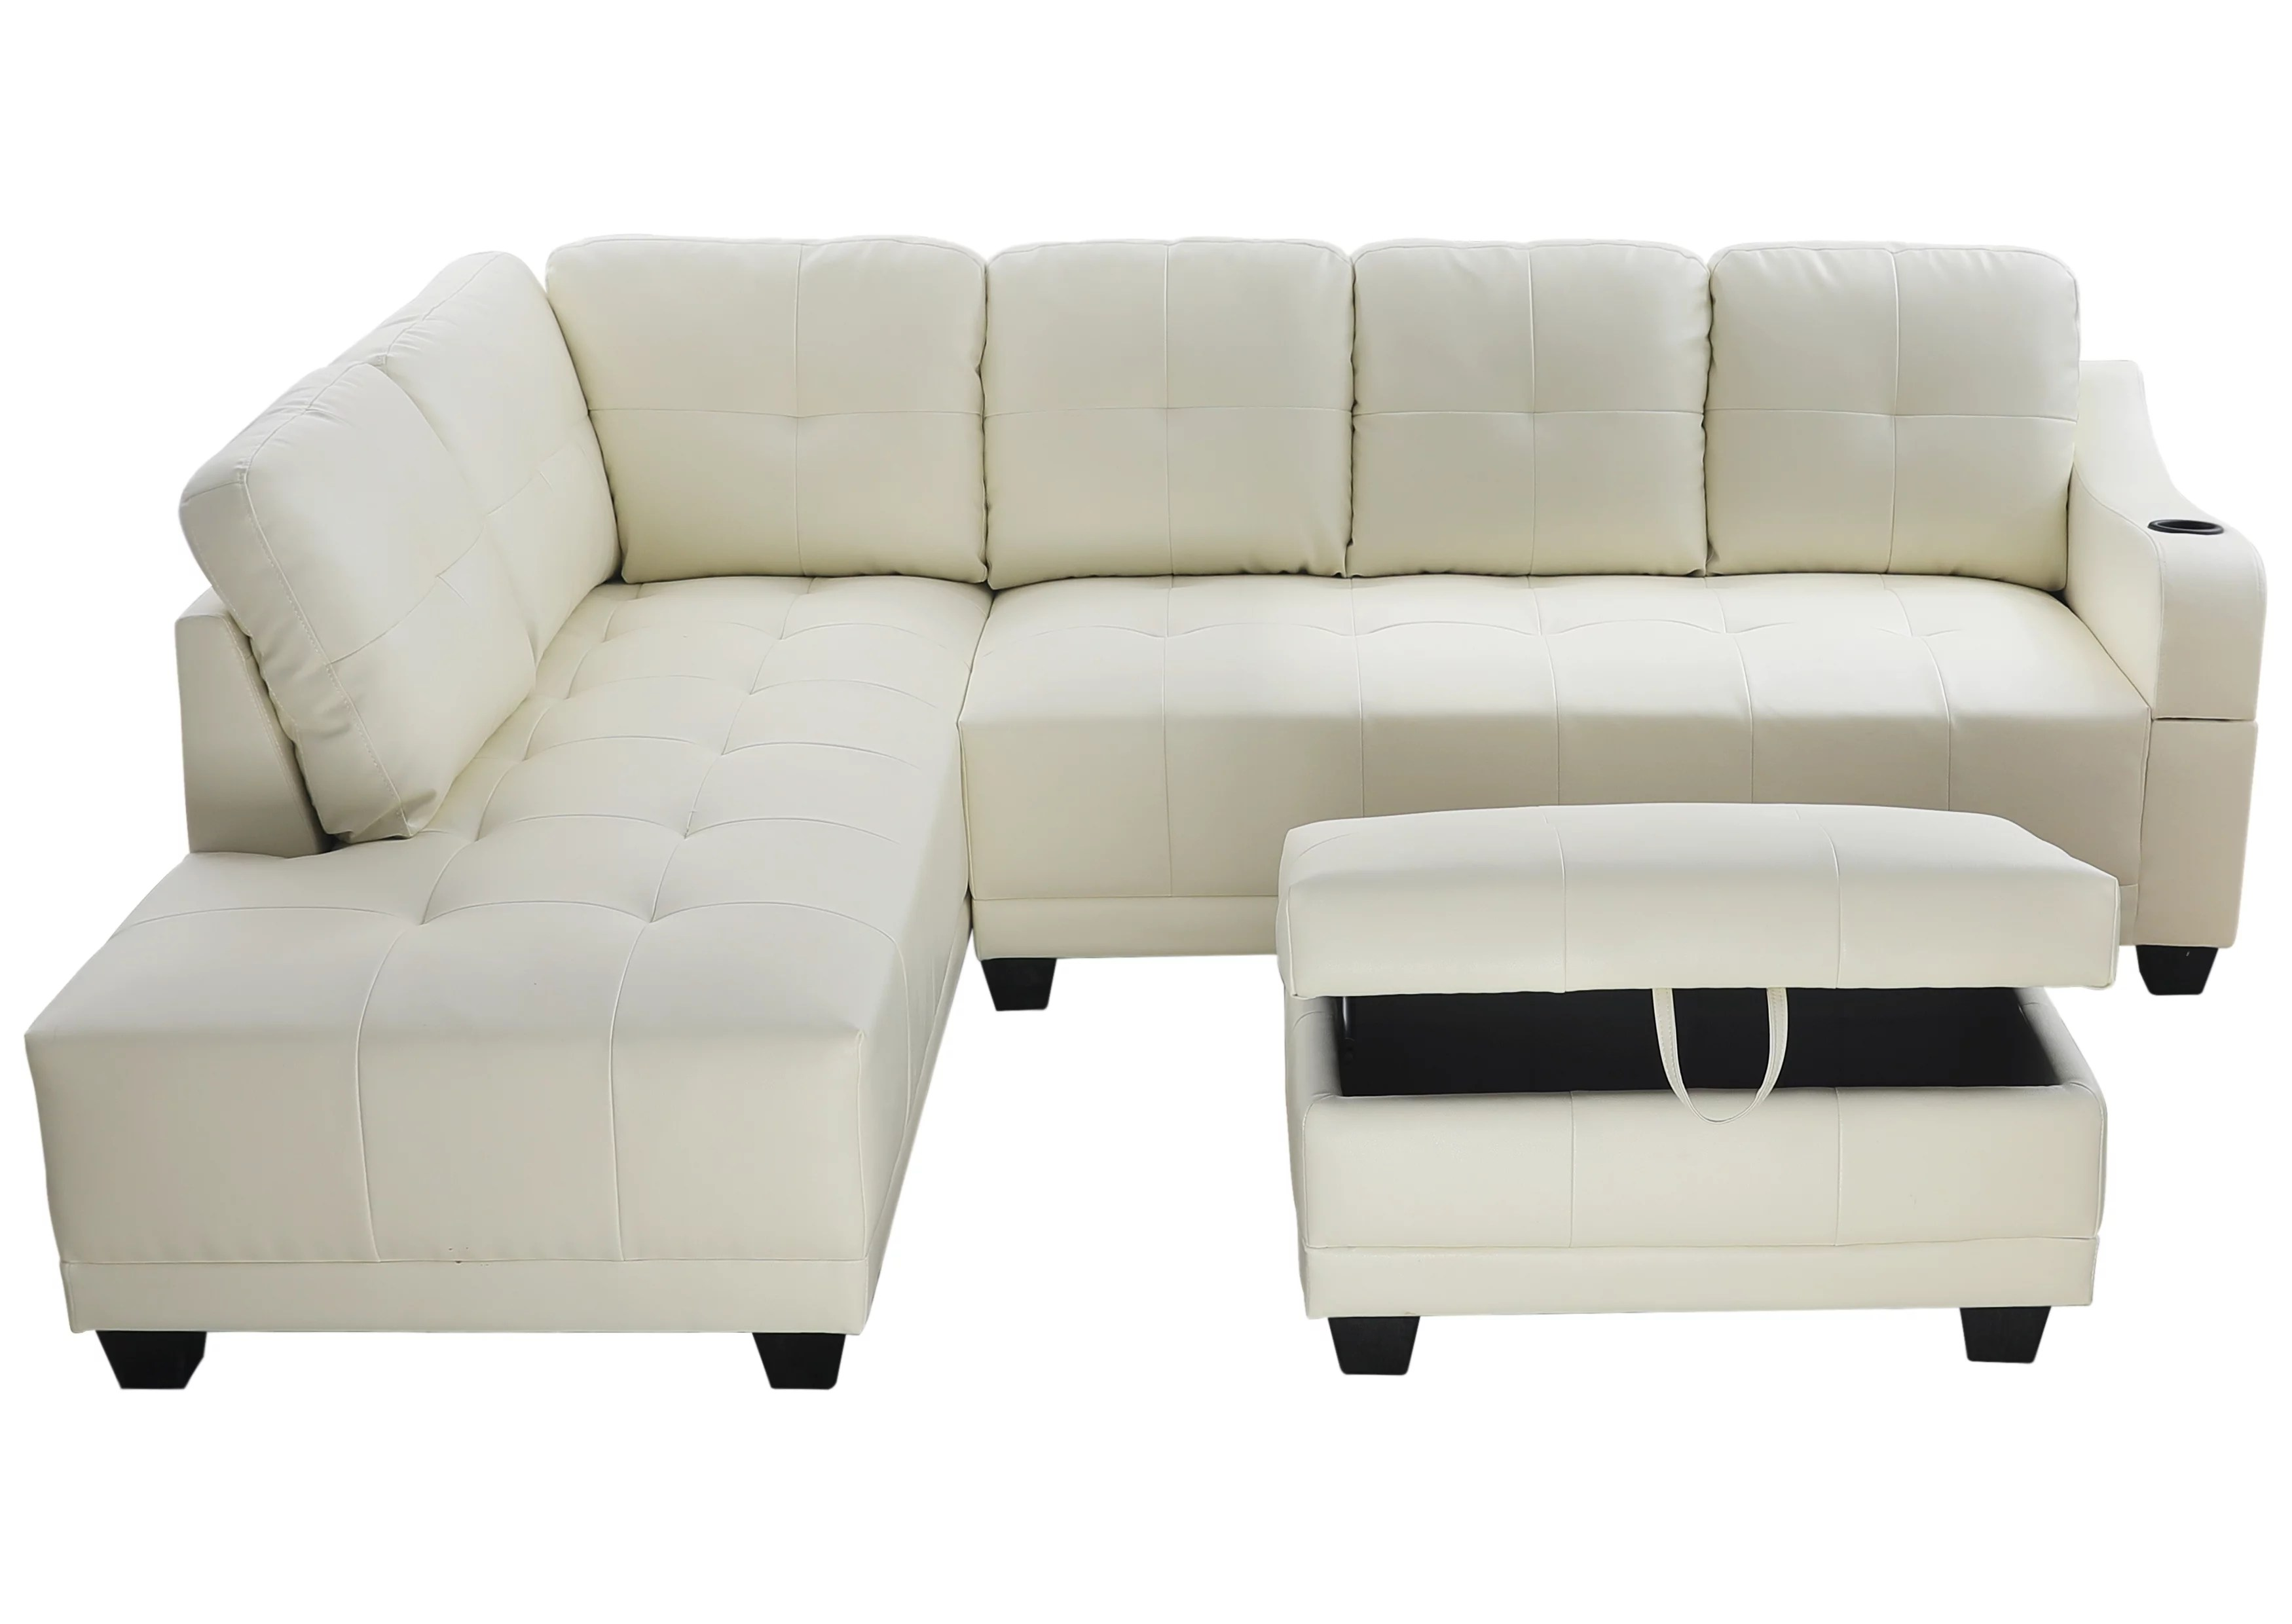 sectional sofa aycp furniture white faux leather sectional sofa with cup holder on the arm and storage ottoman left hand facing chaise more colors